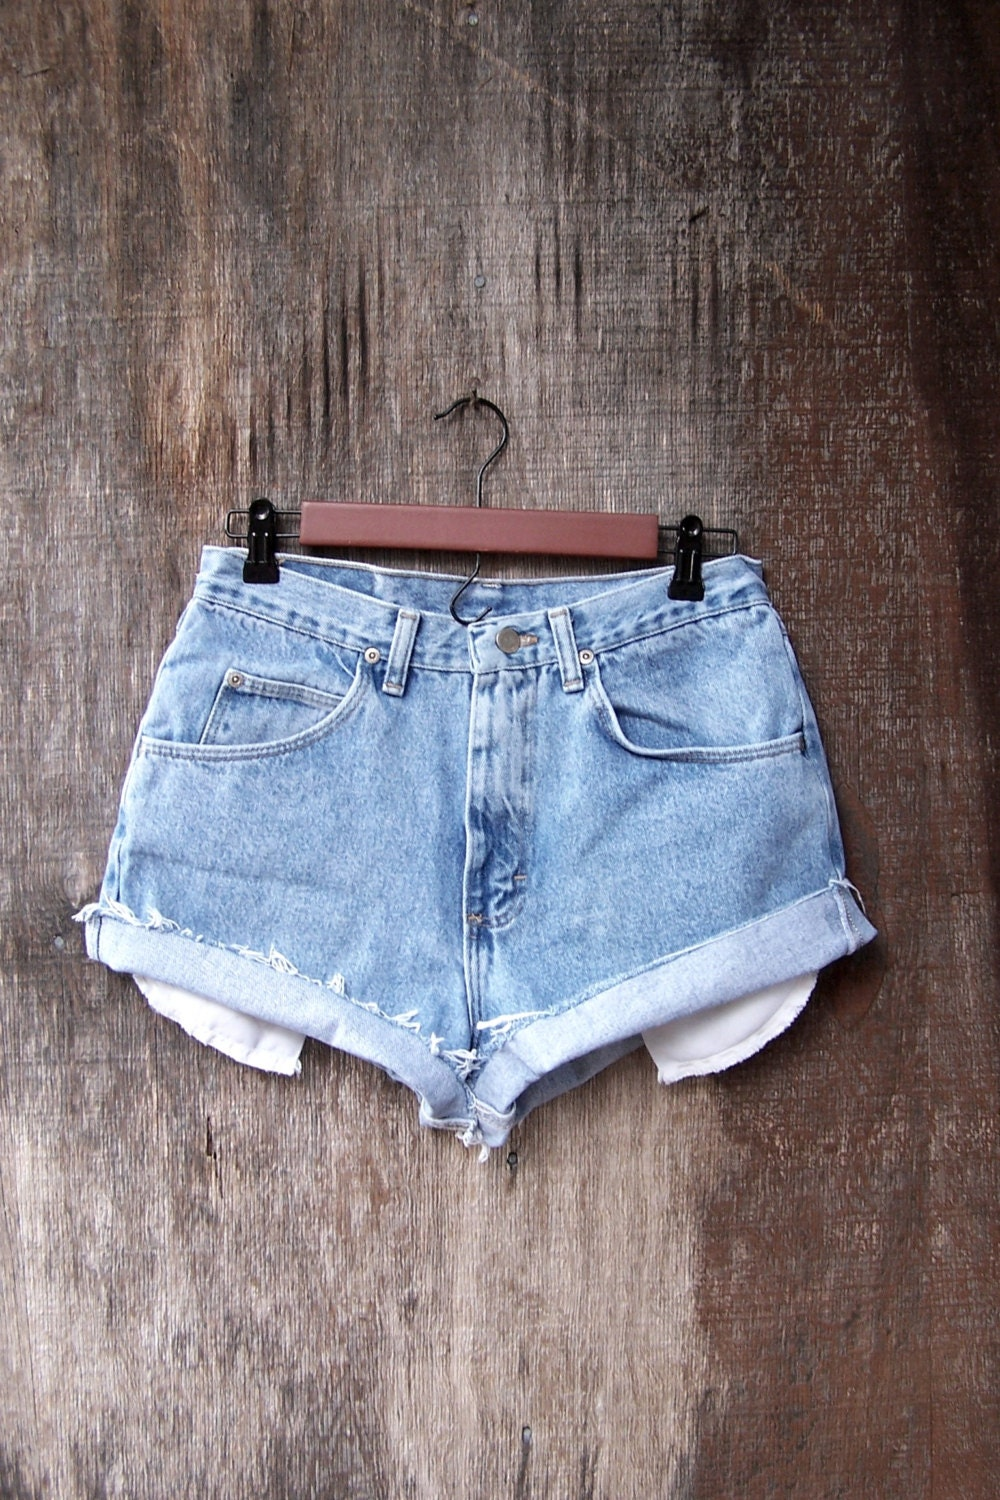 Basic high waisted booty shorts pockets showing upcycled 1990s